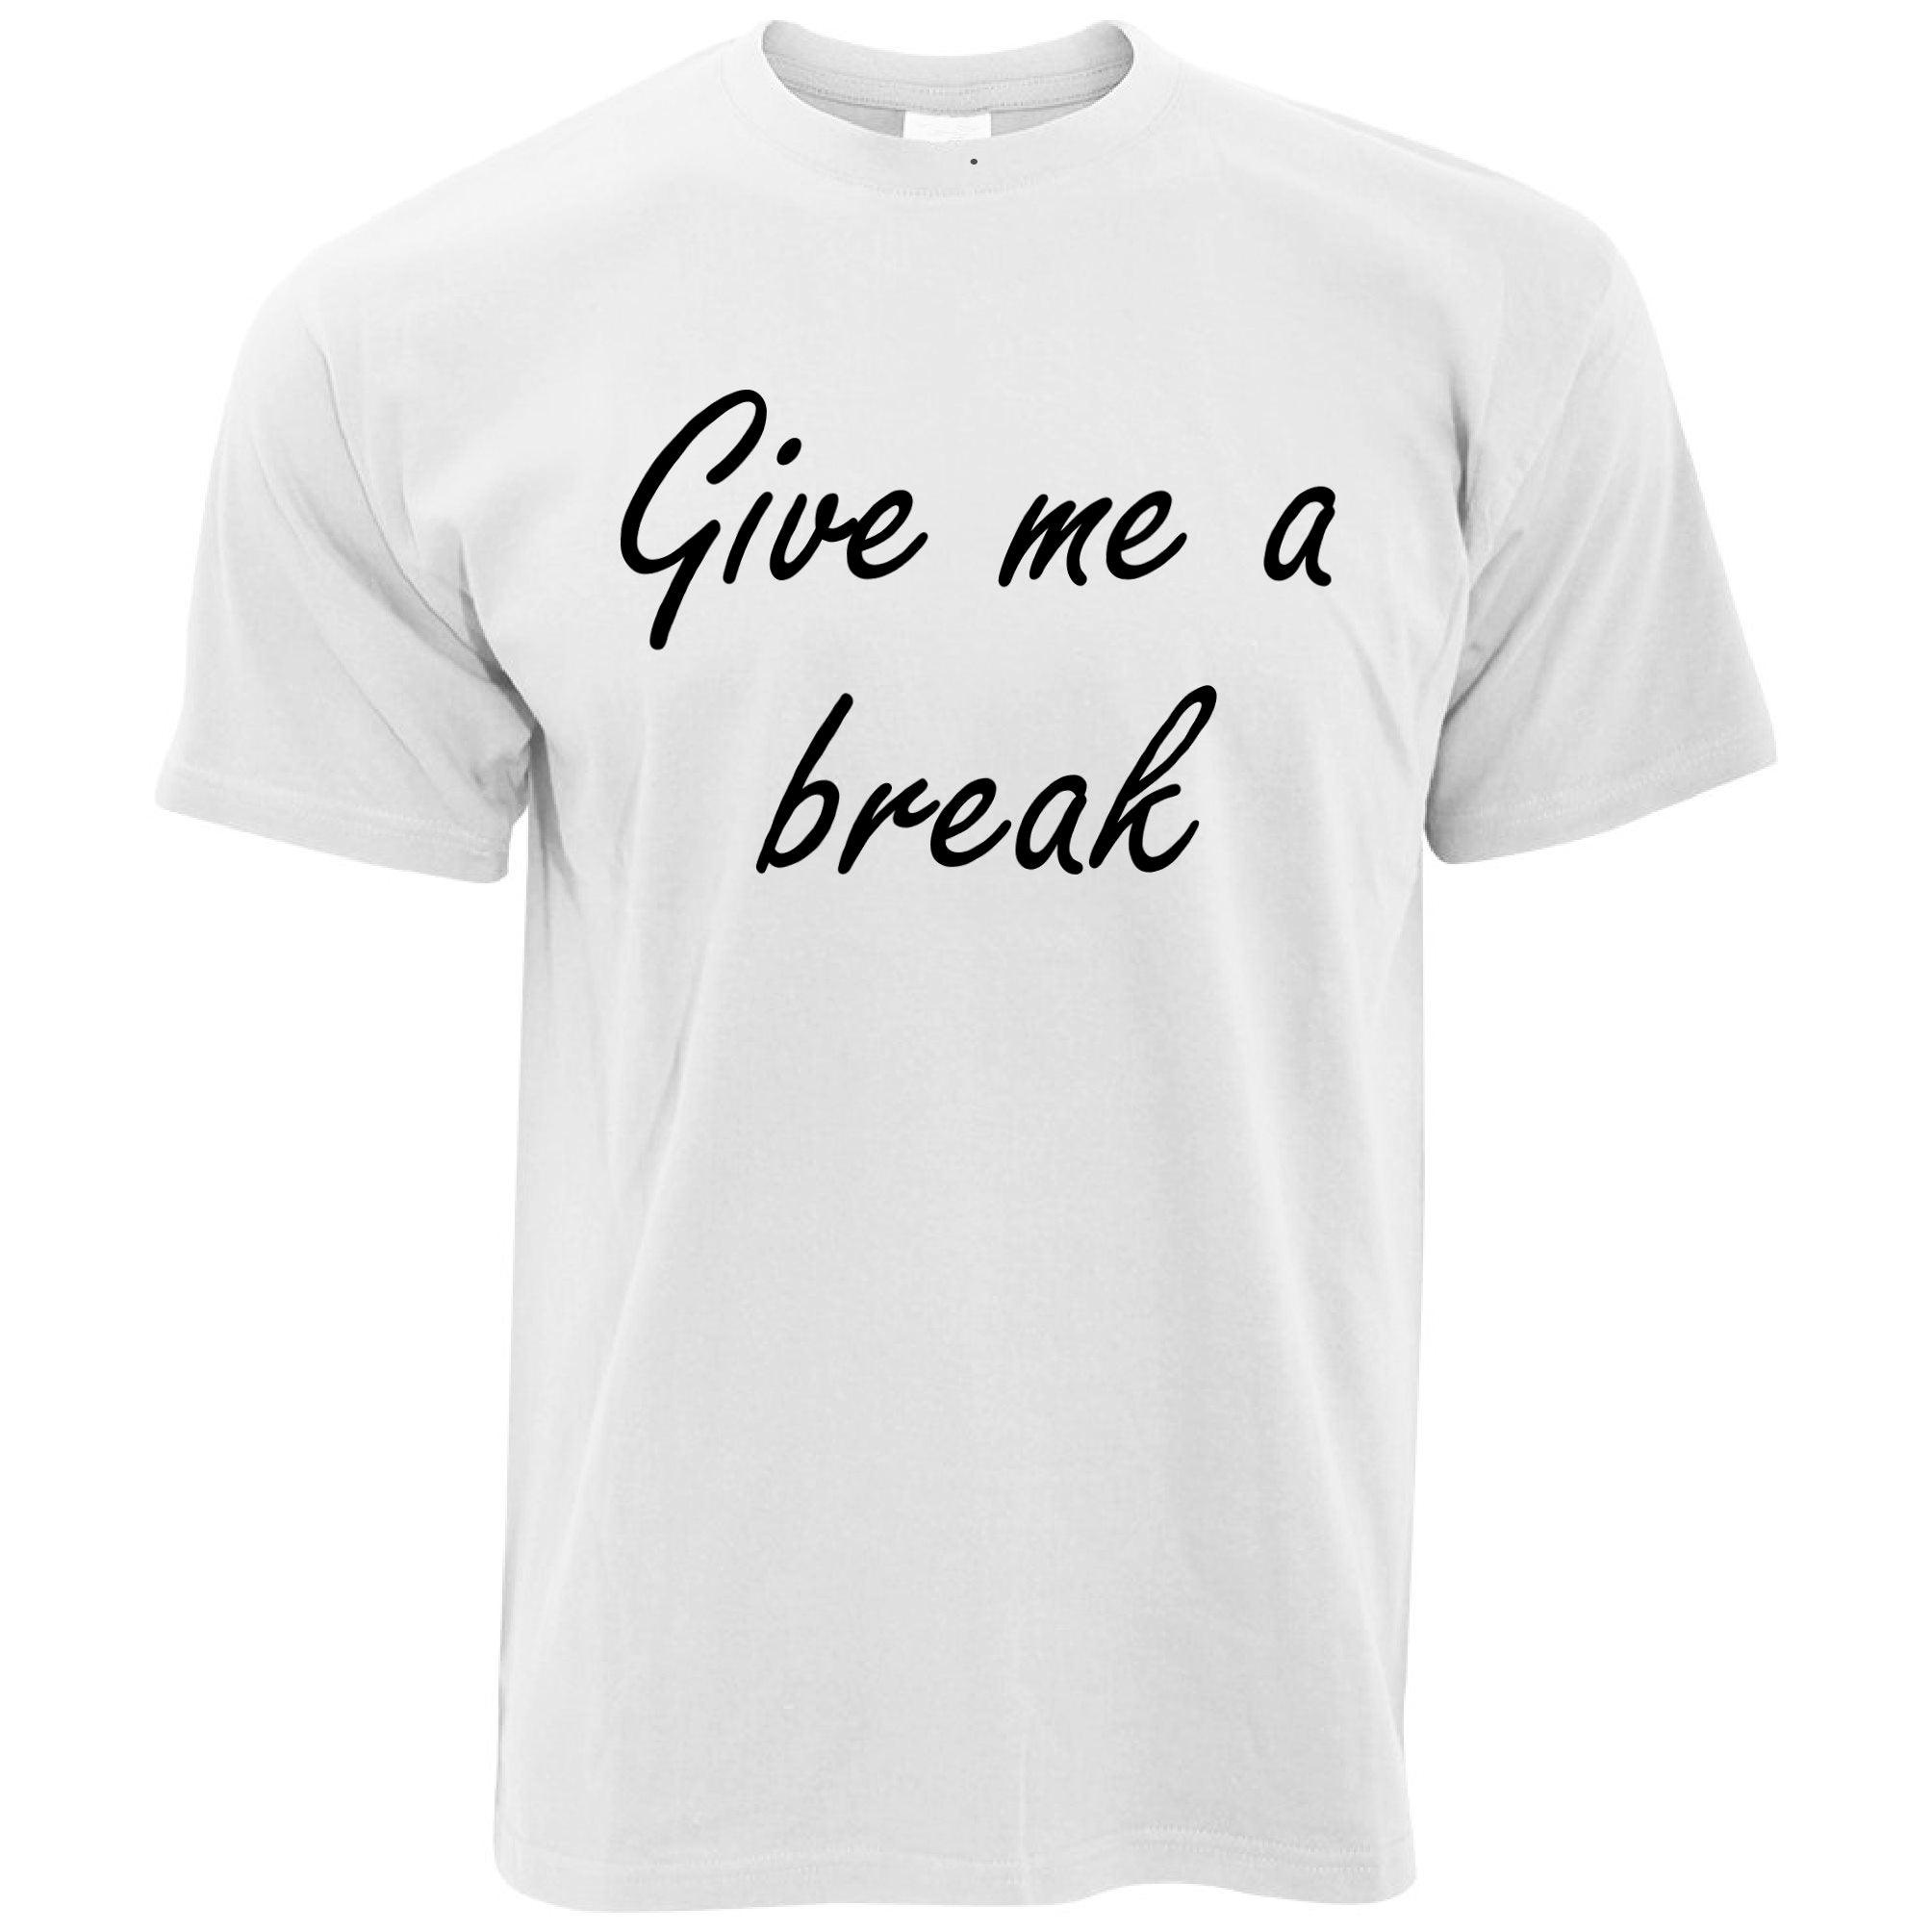 Mens Novelty T Shirt Give Me A Break Joke Slogan Tee